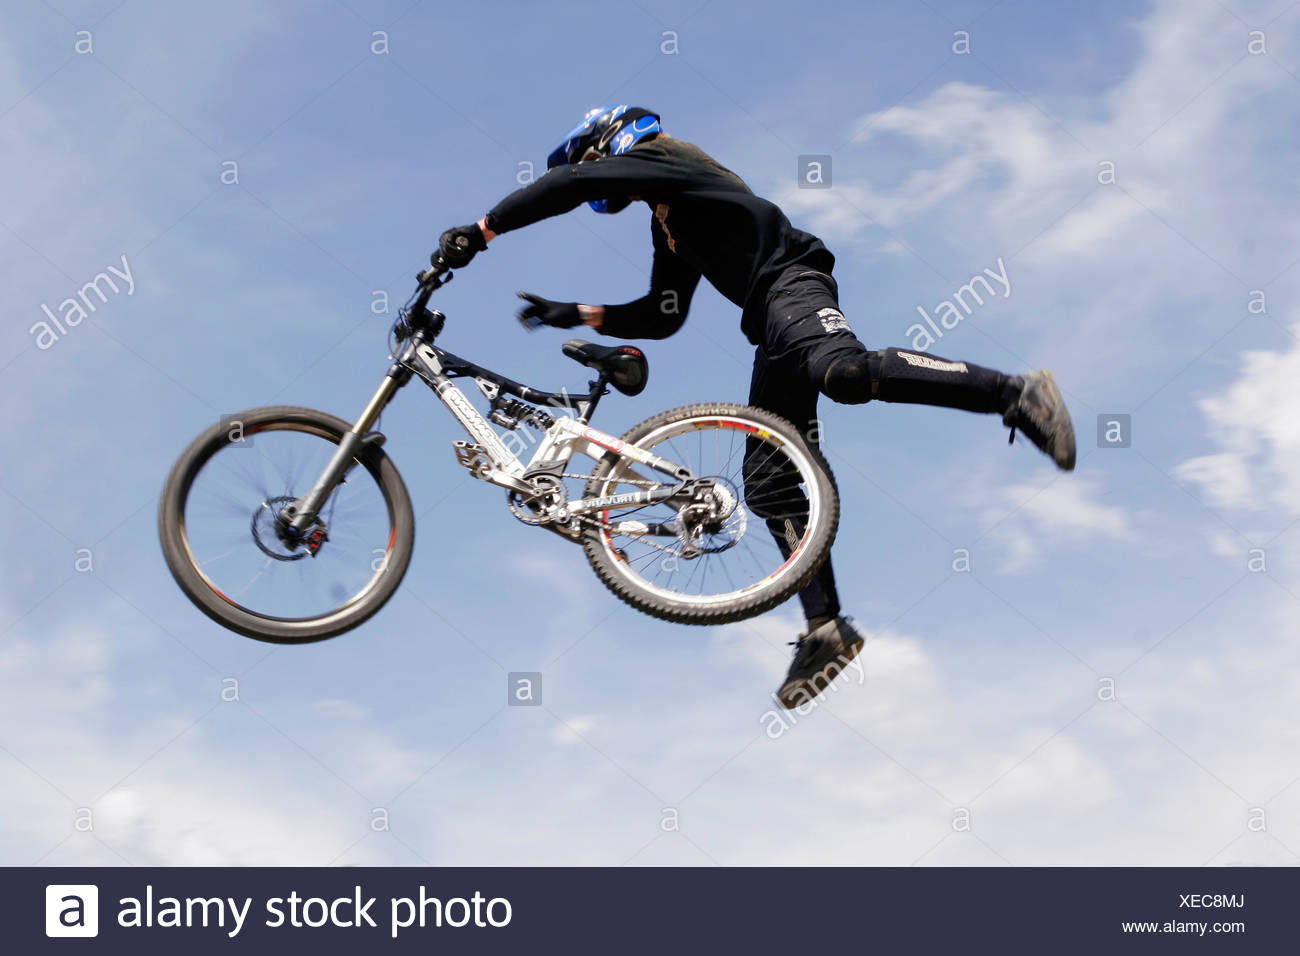 Biker performs tricky jump in the air Stock Photo